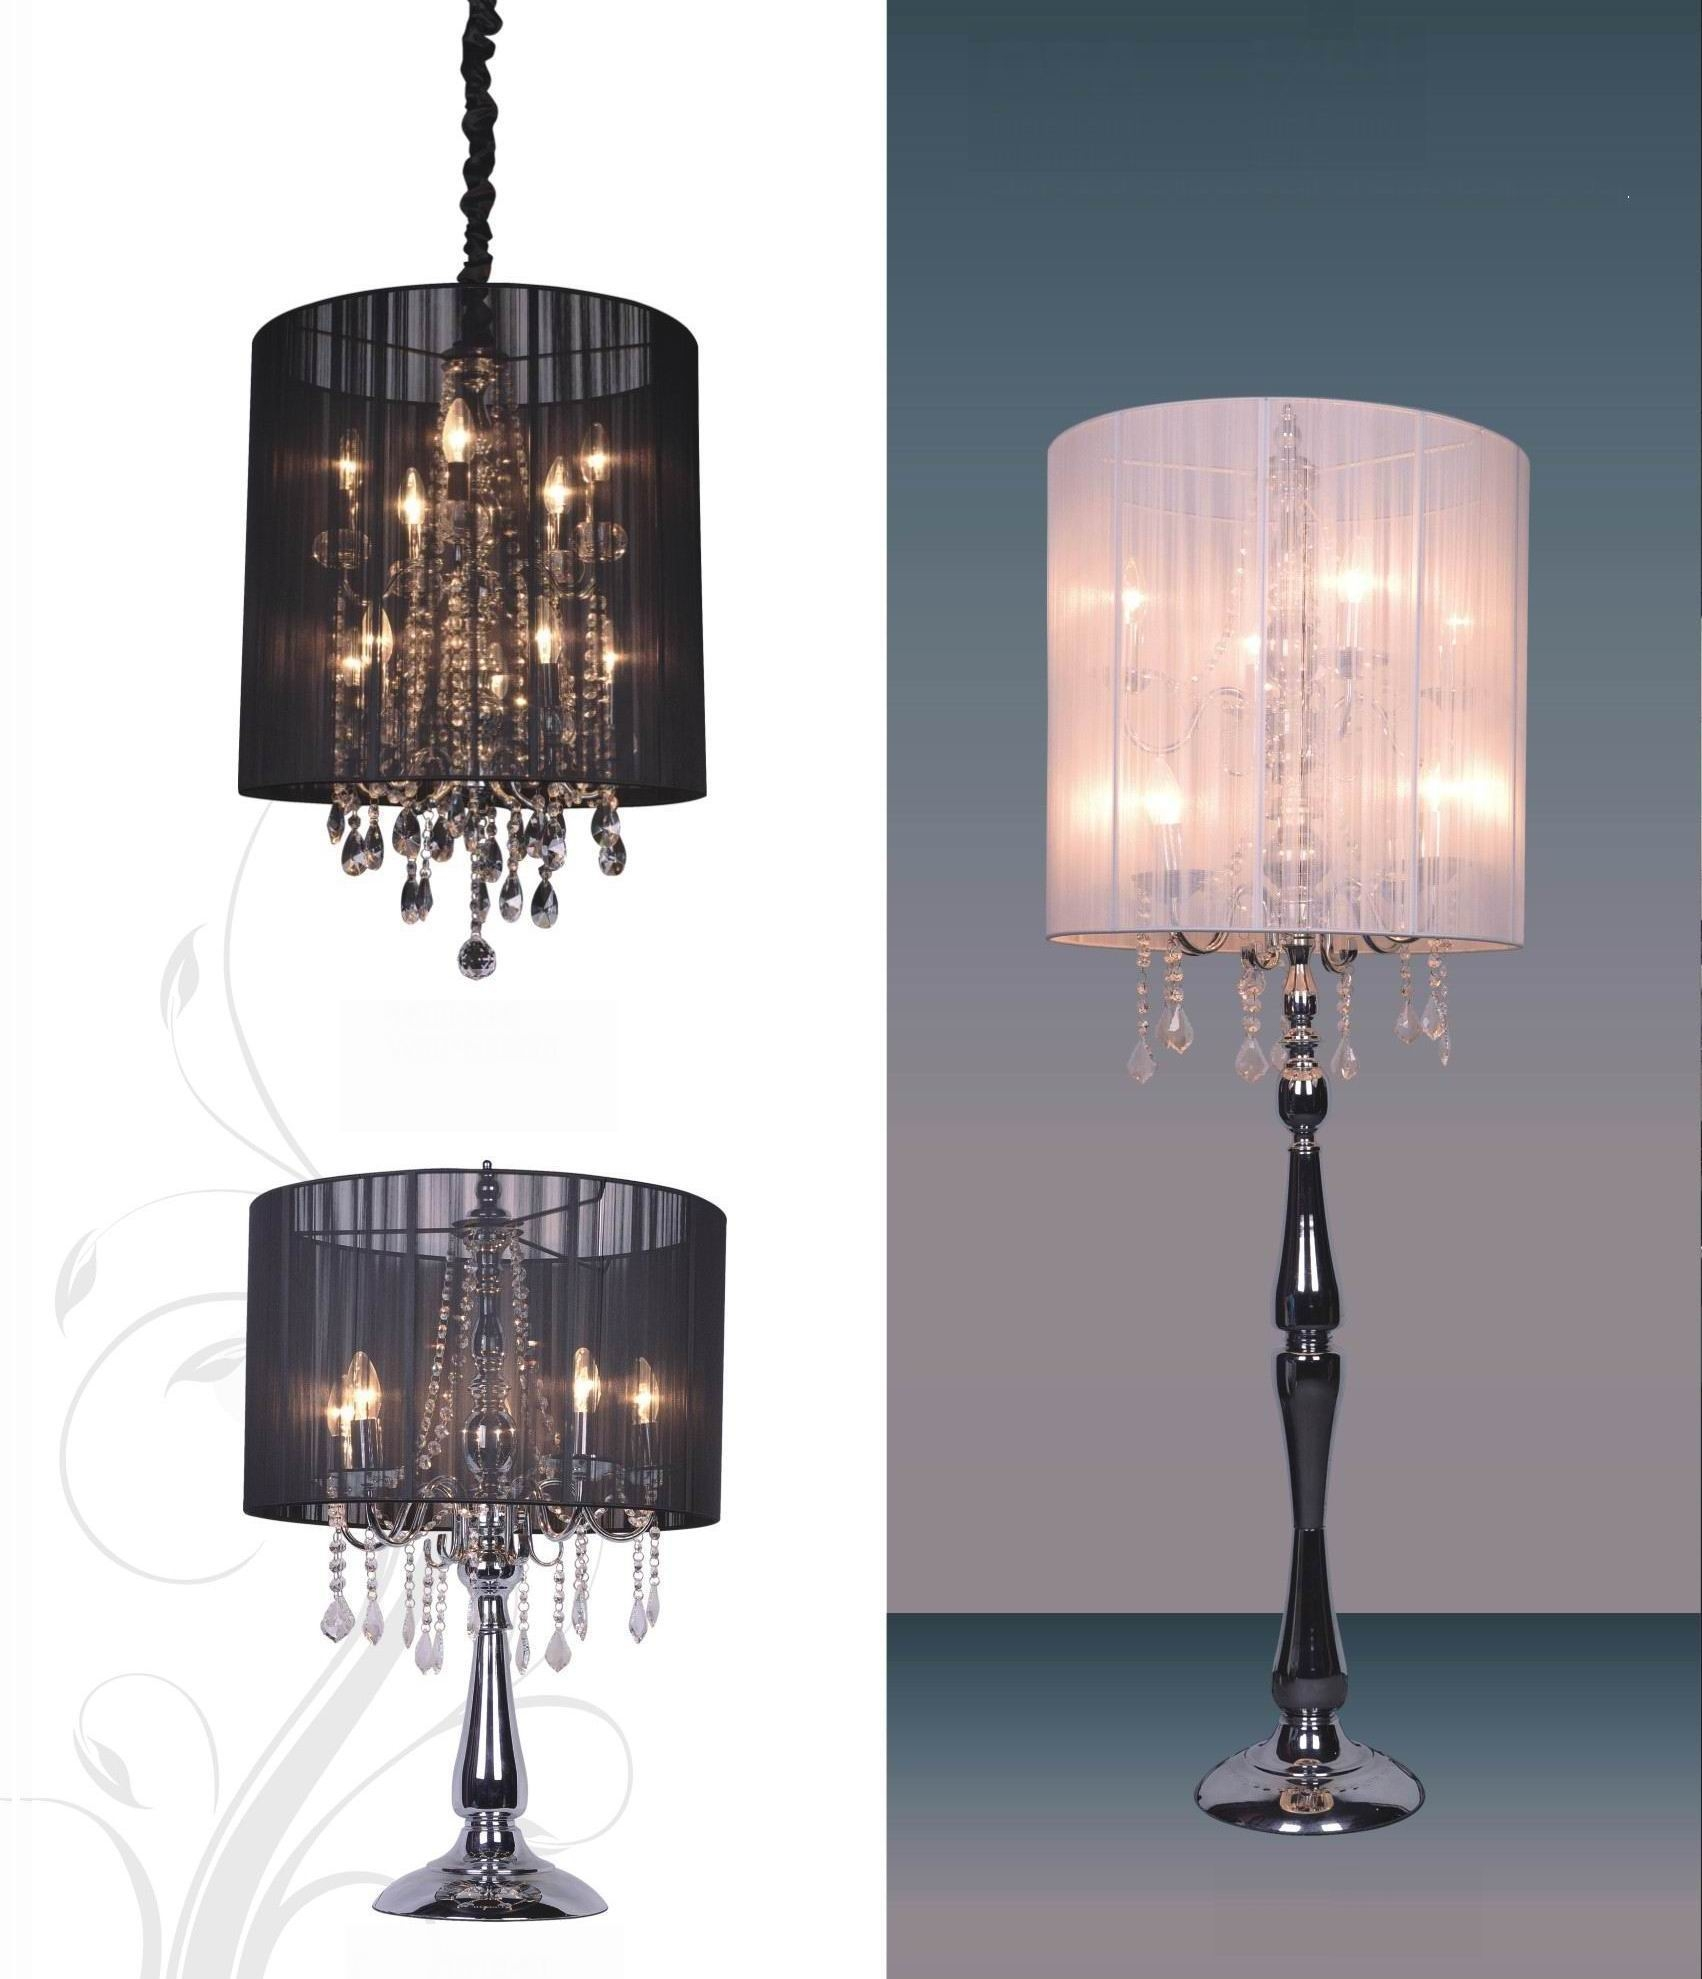 Lamp Mini Chandelier Table Lamp Home Design Ideas Camewatchus Org With Small Chandelier Table Lamps (View 9 of 25)